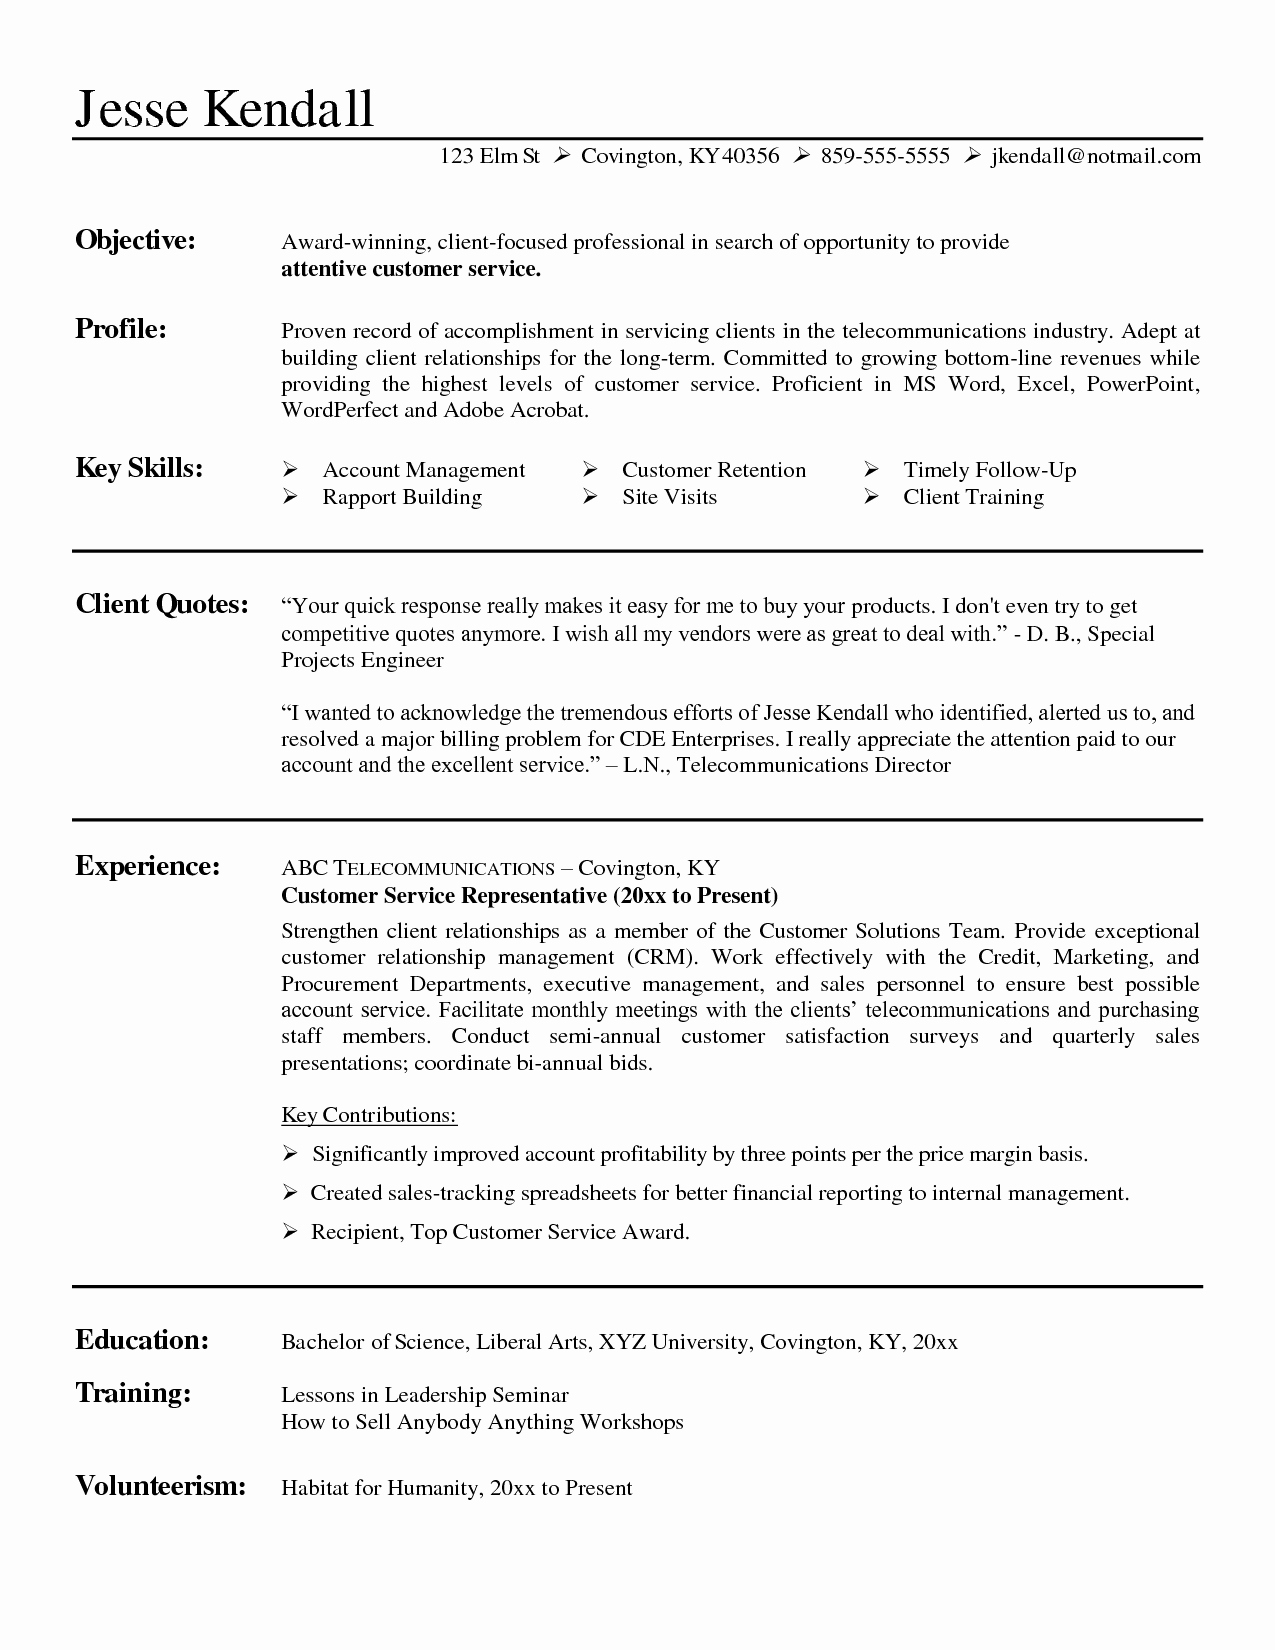 Going Paperless Letter to Customers Template - Sample Administrative assistant Resume Elegant 29 Best Resume